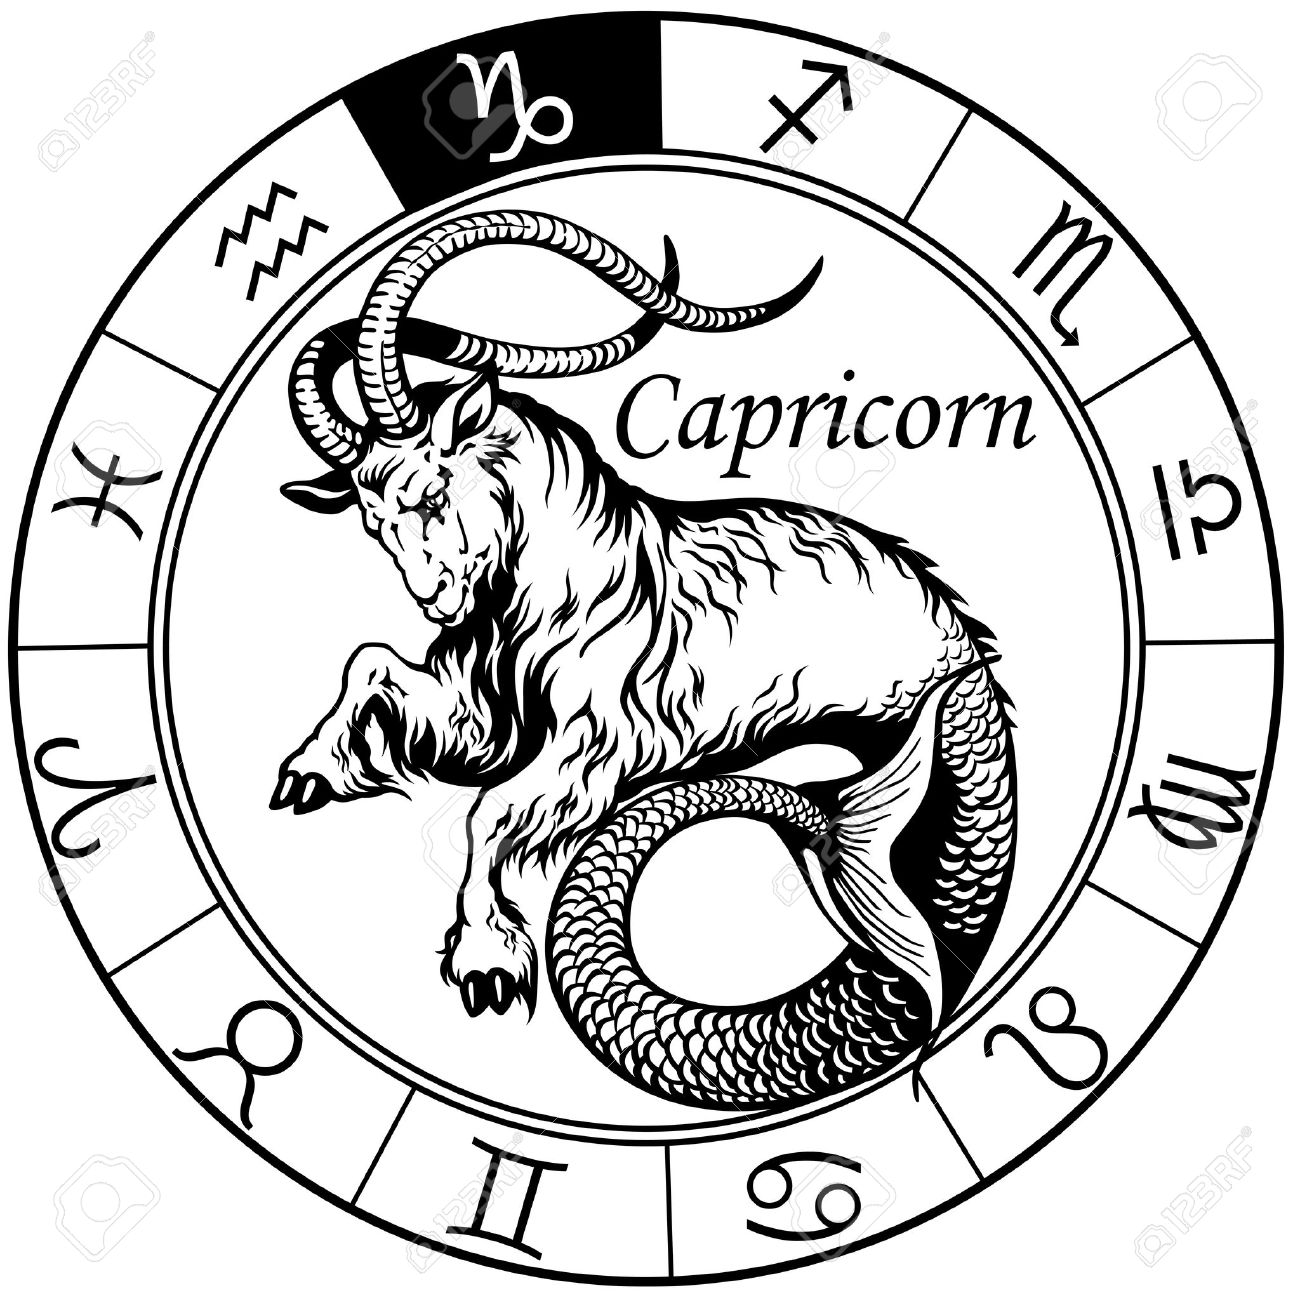 capricorn astrology